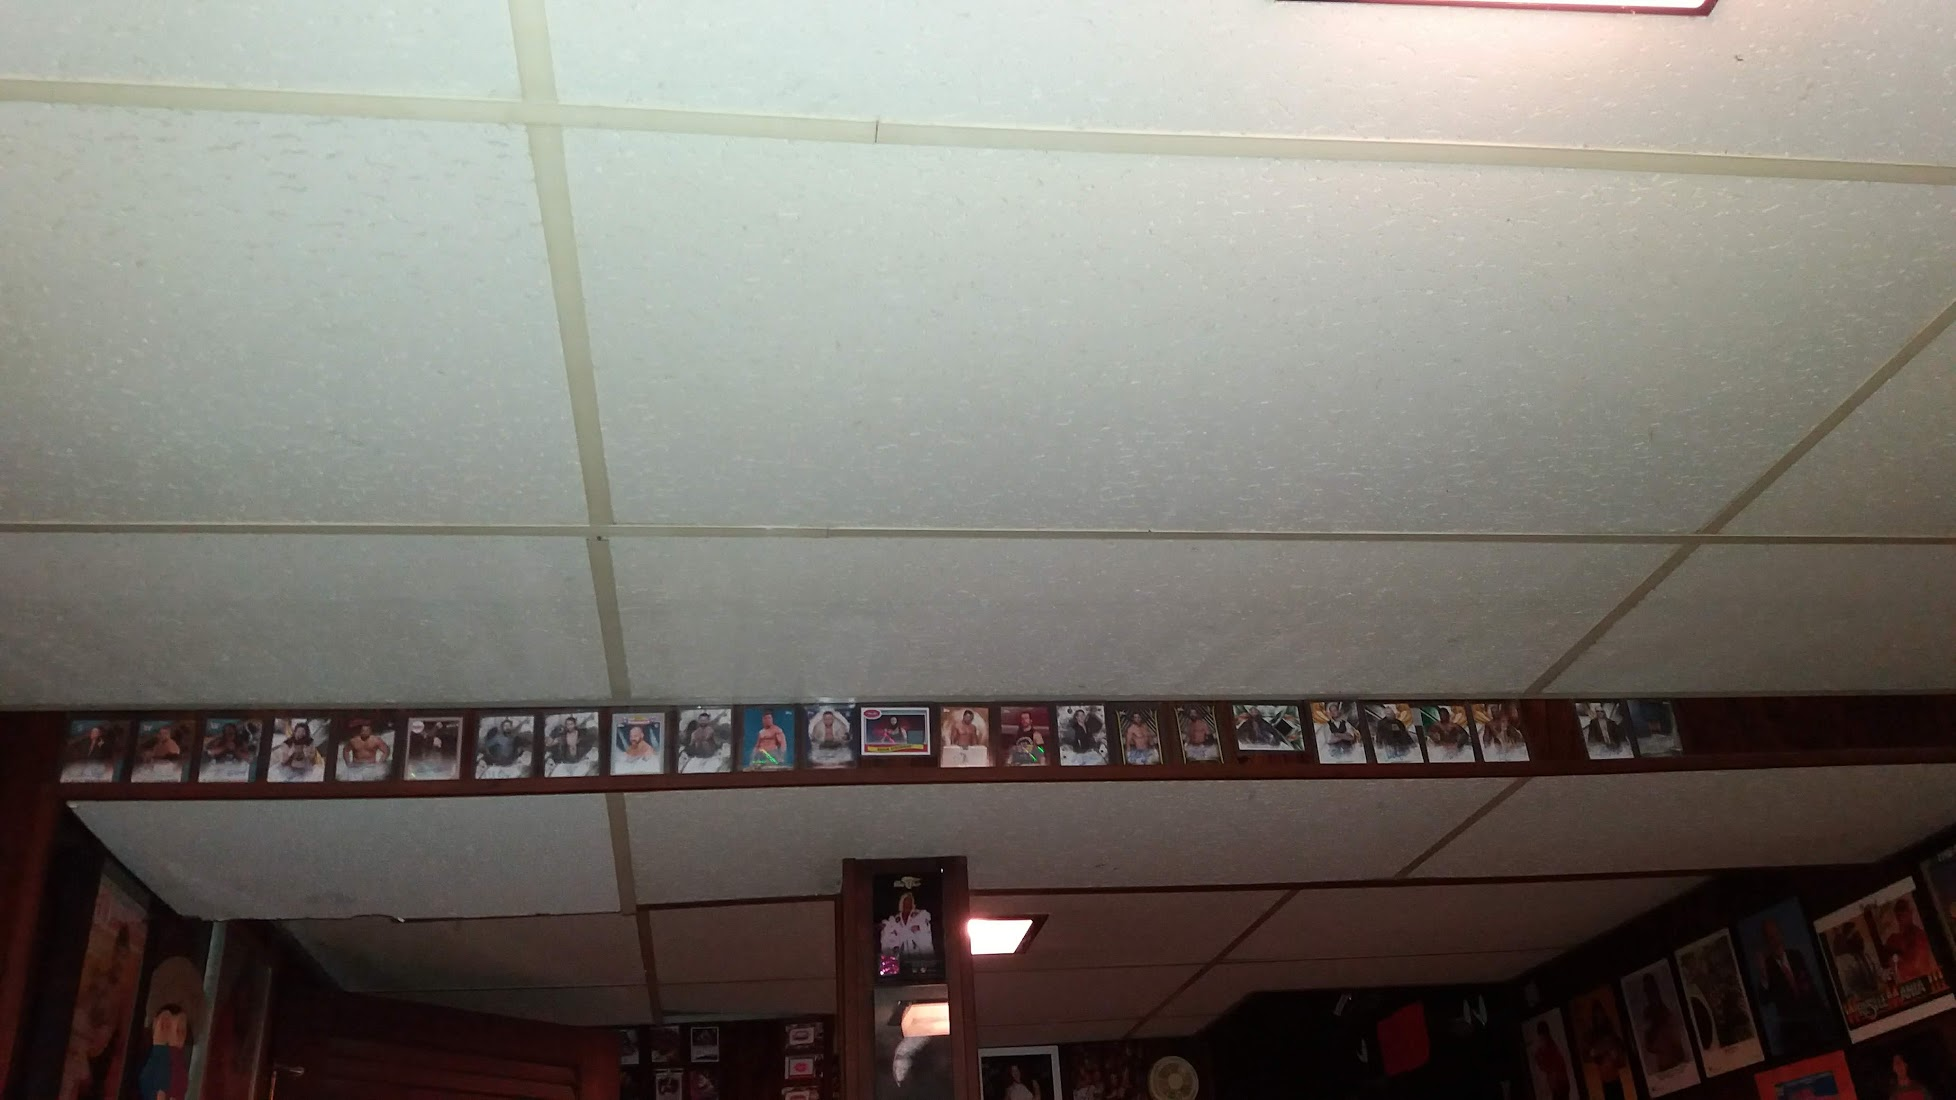 Signed Trading Cards Area.